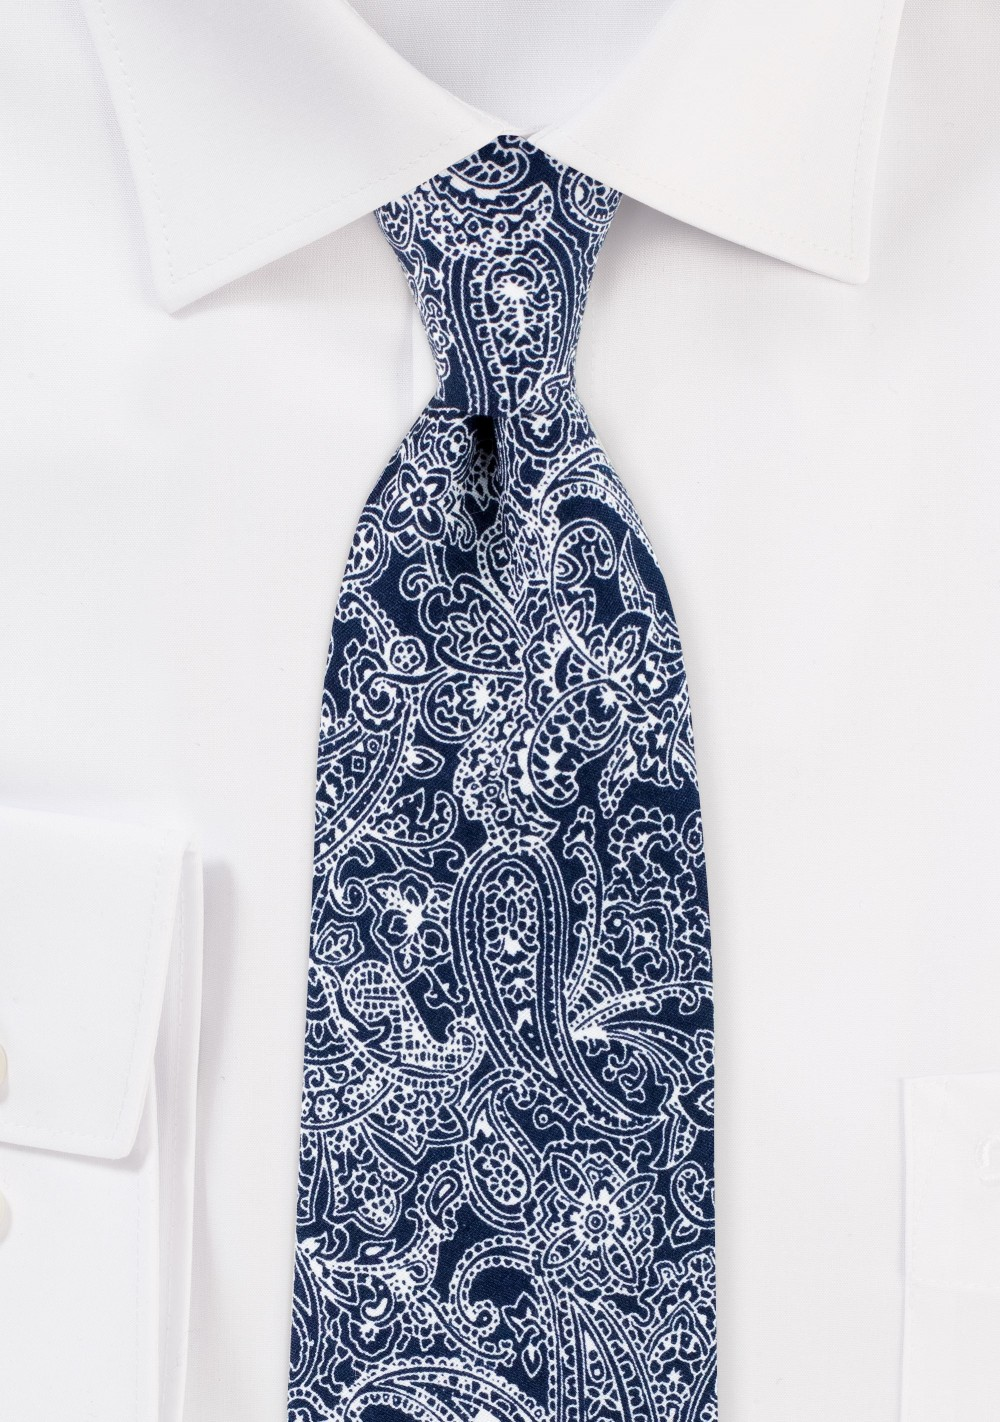 Bandana Style Paisley Print Cotton Tie in Navy and White